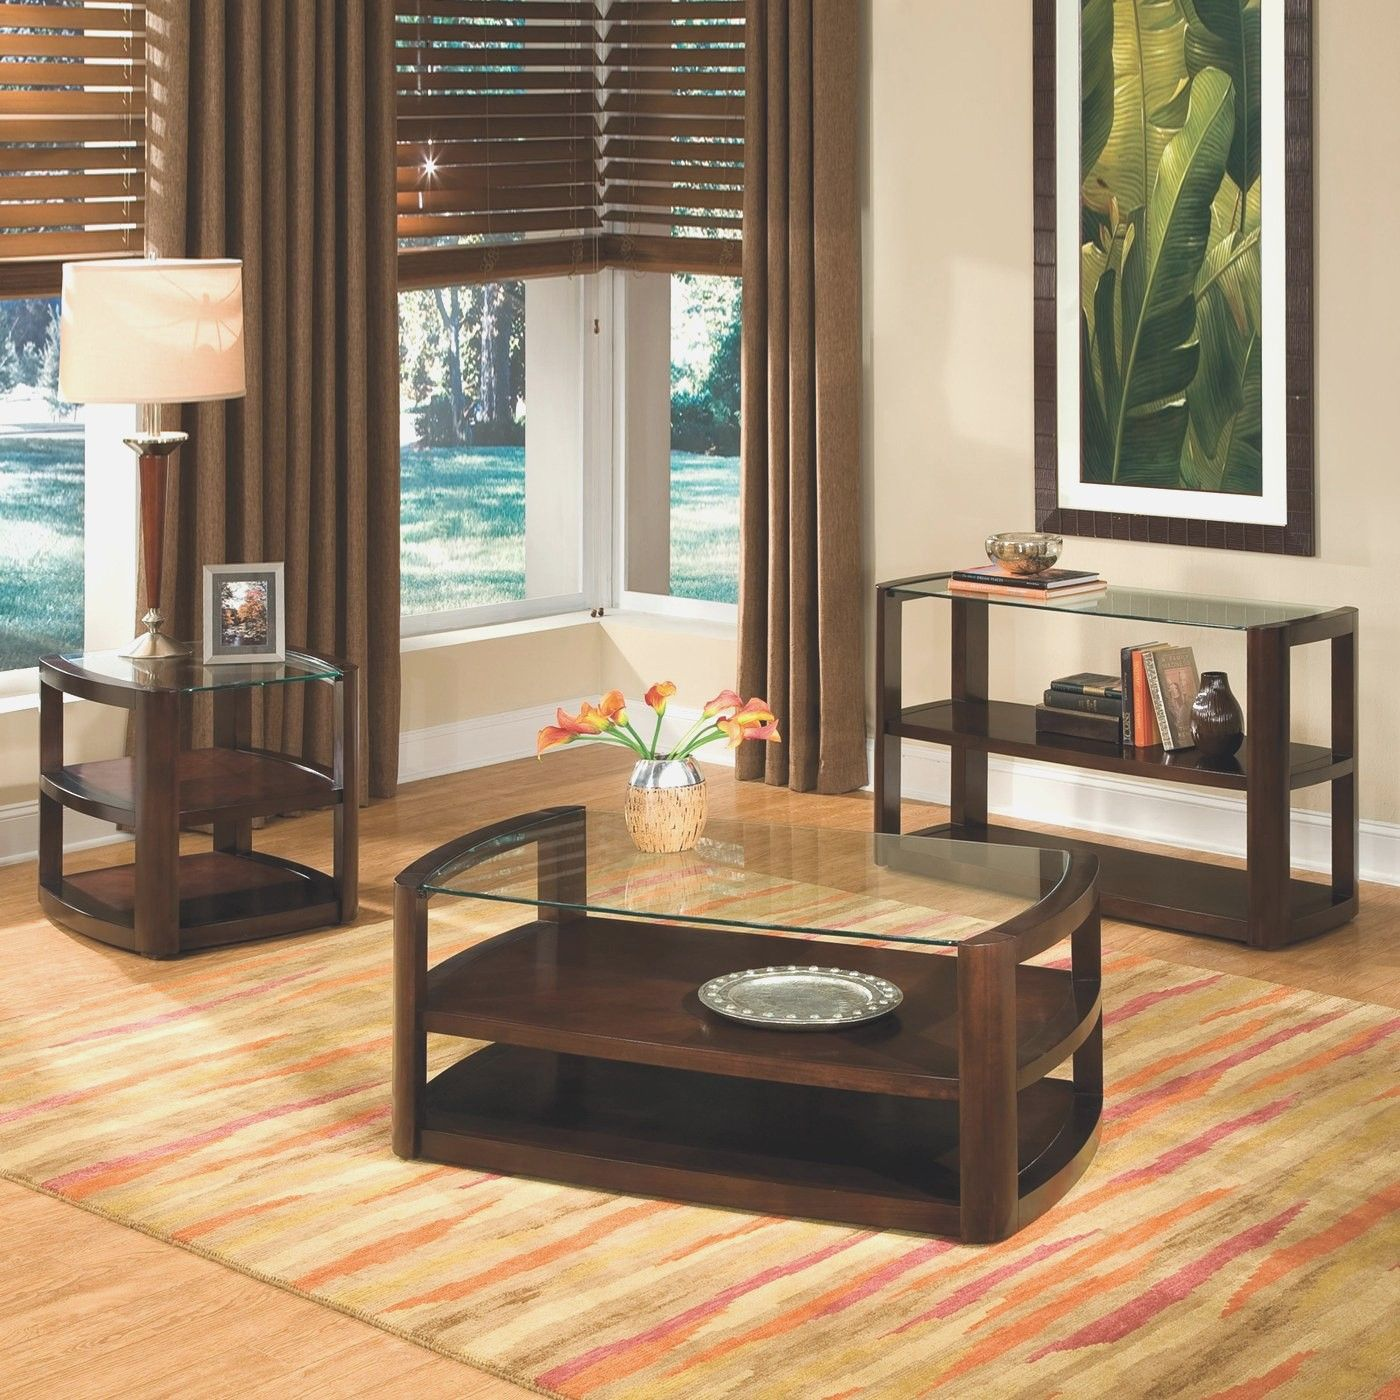 Affordable Living Room Furniture Sets   Affordable Living Room Furniture  Sets, Affordable Living Room Sets